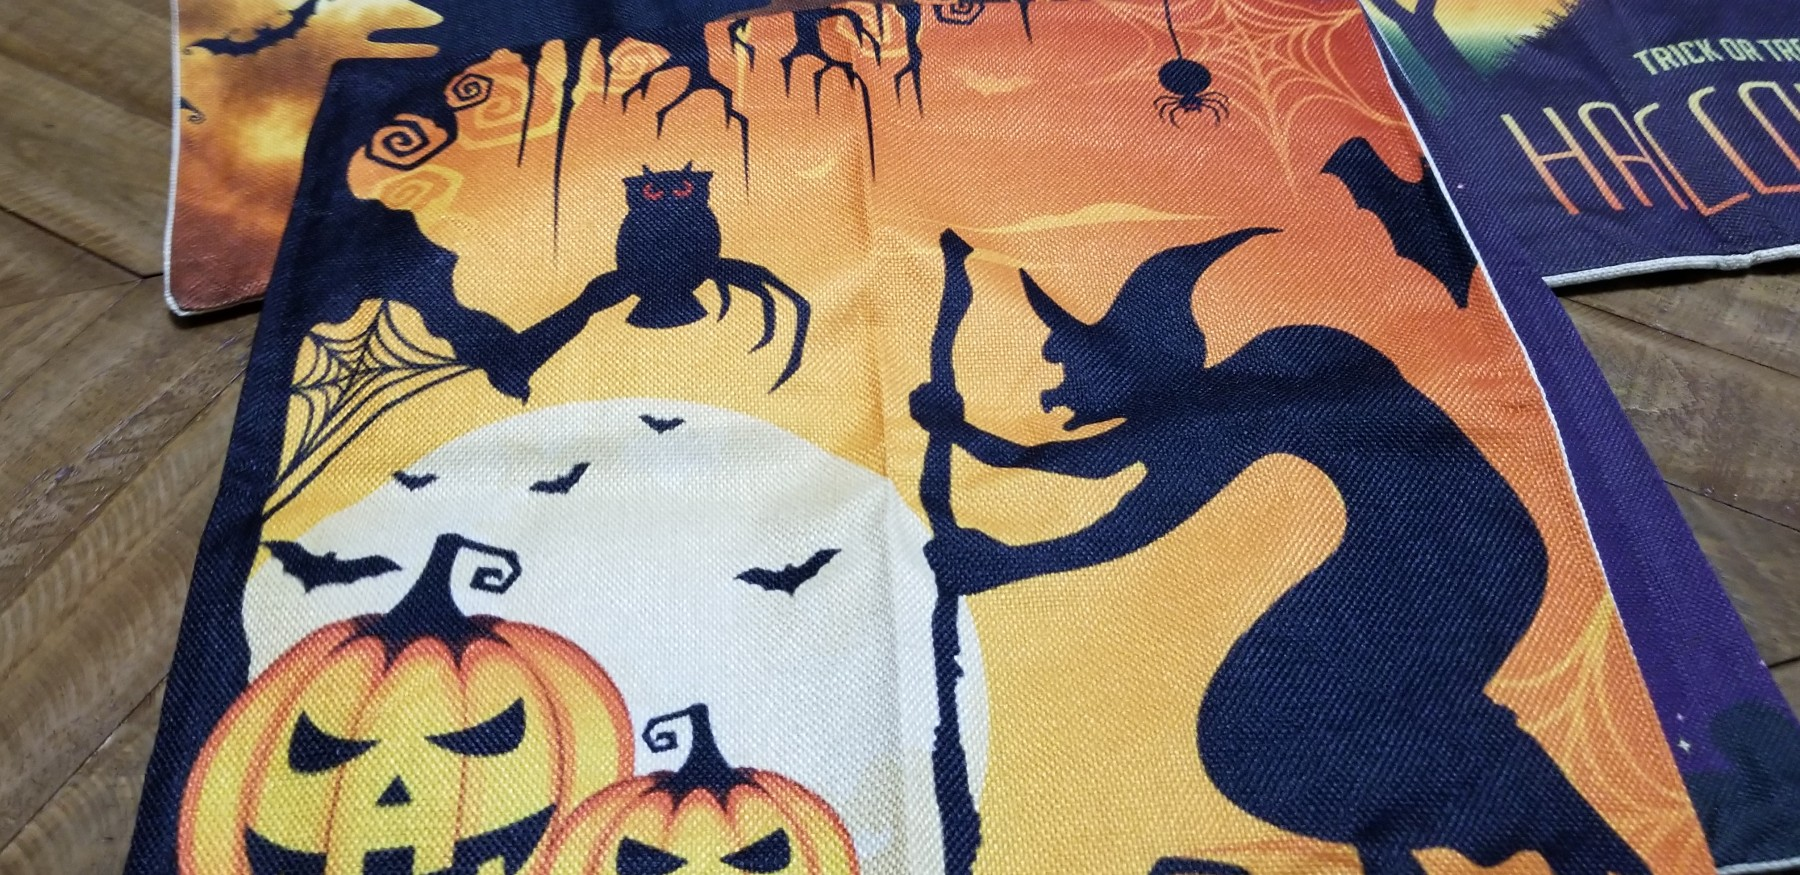 Great Halloween pillow covers